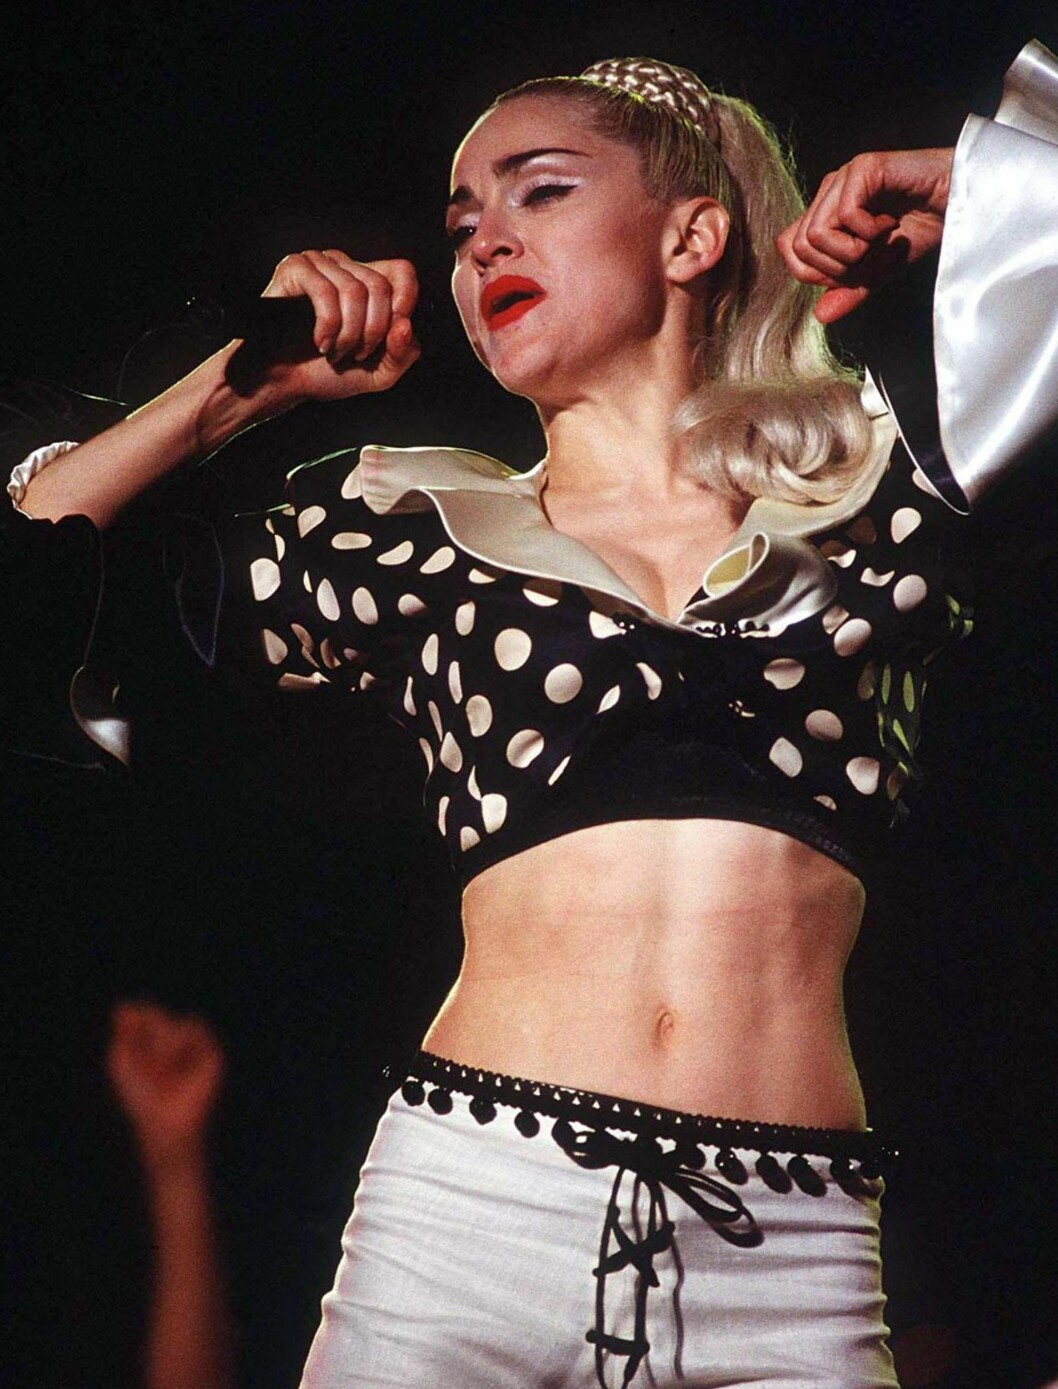 Polkadot-bluse og hvite bukser under «Blond Ambition World Tour».